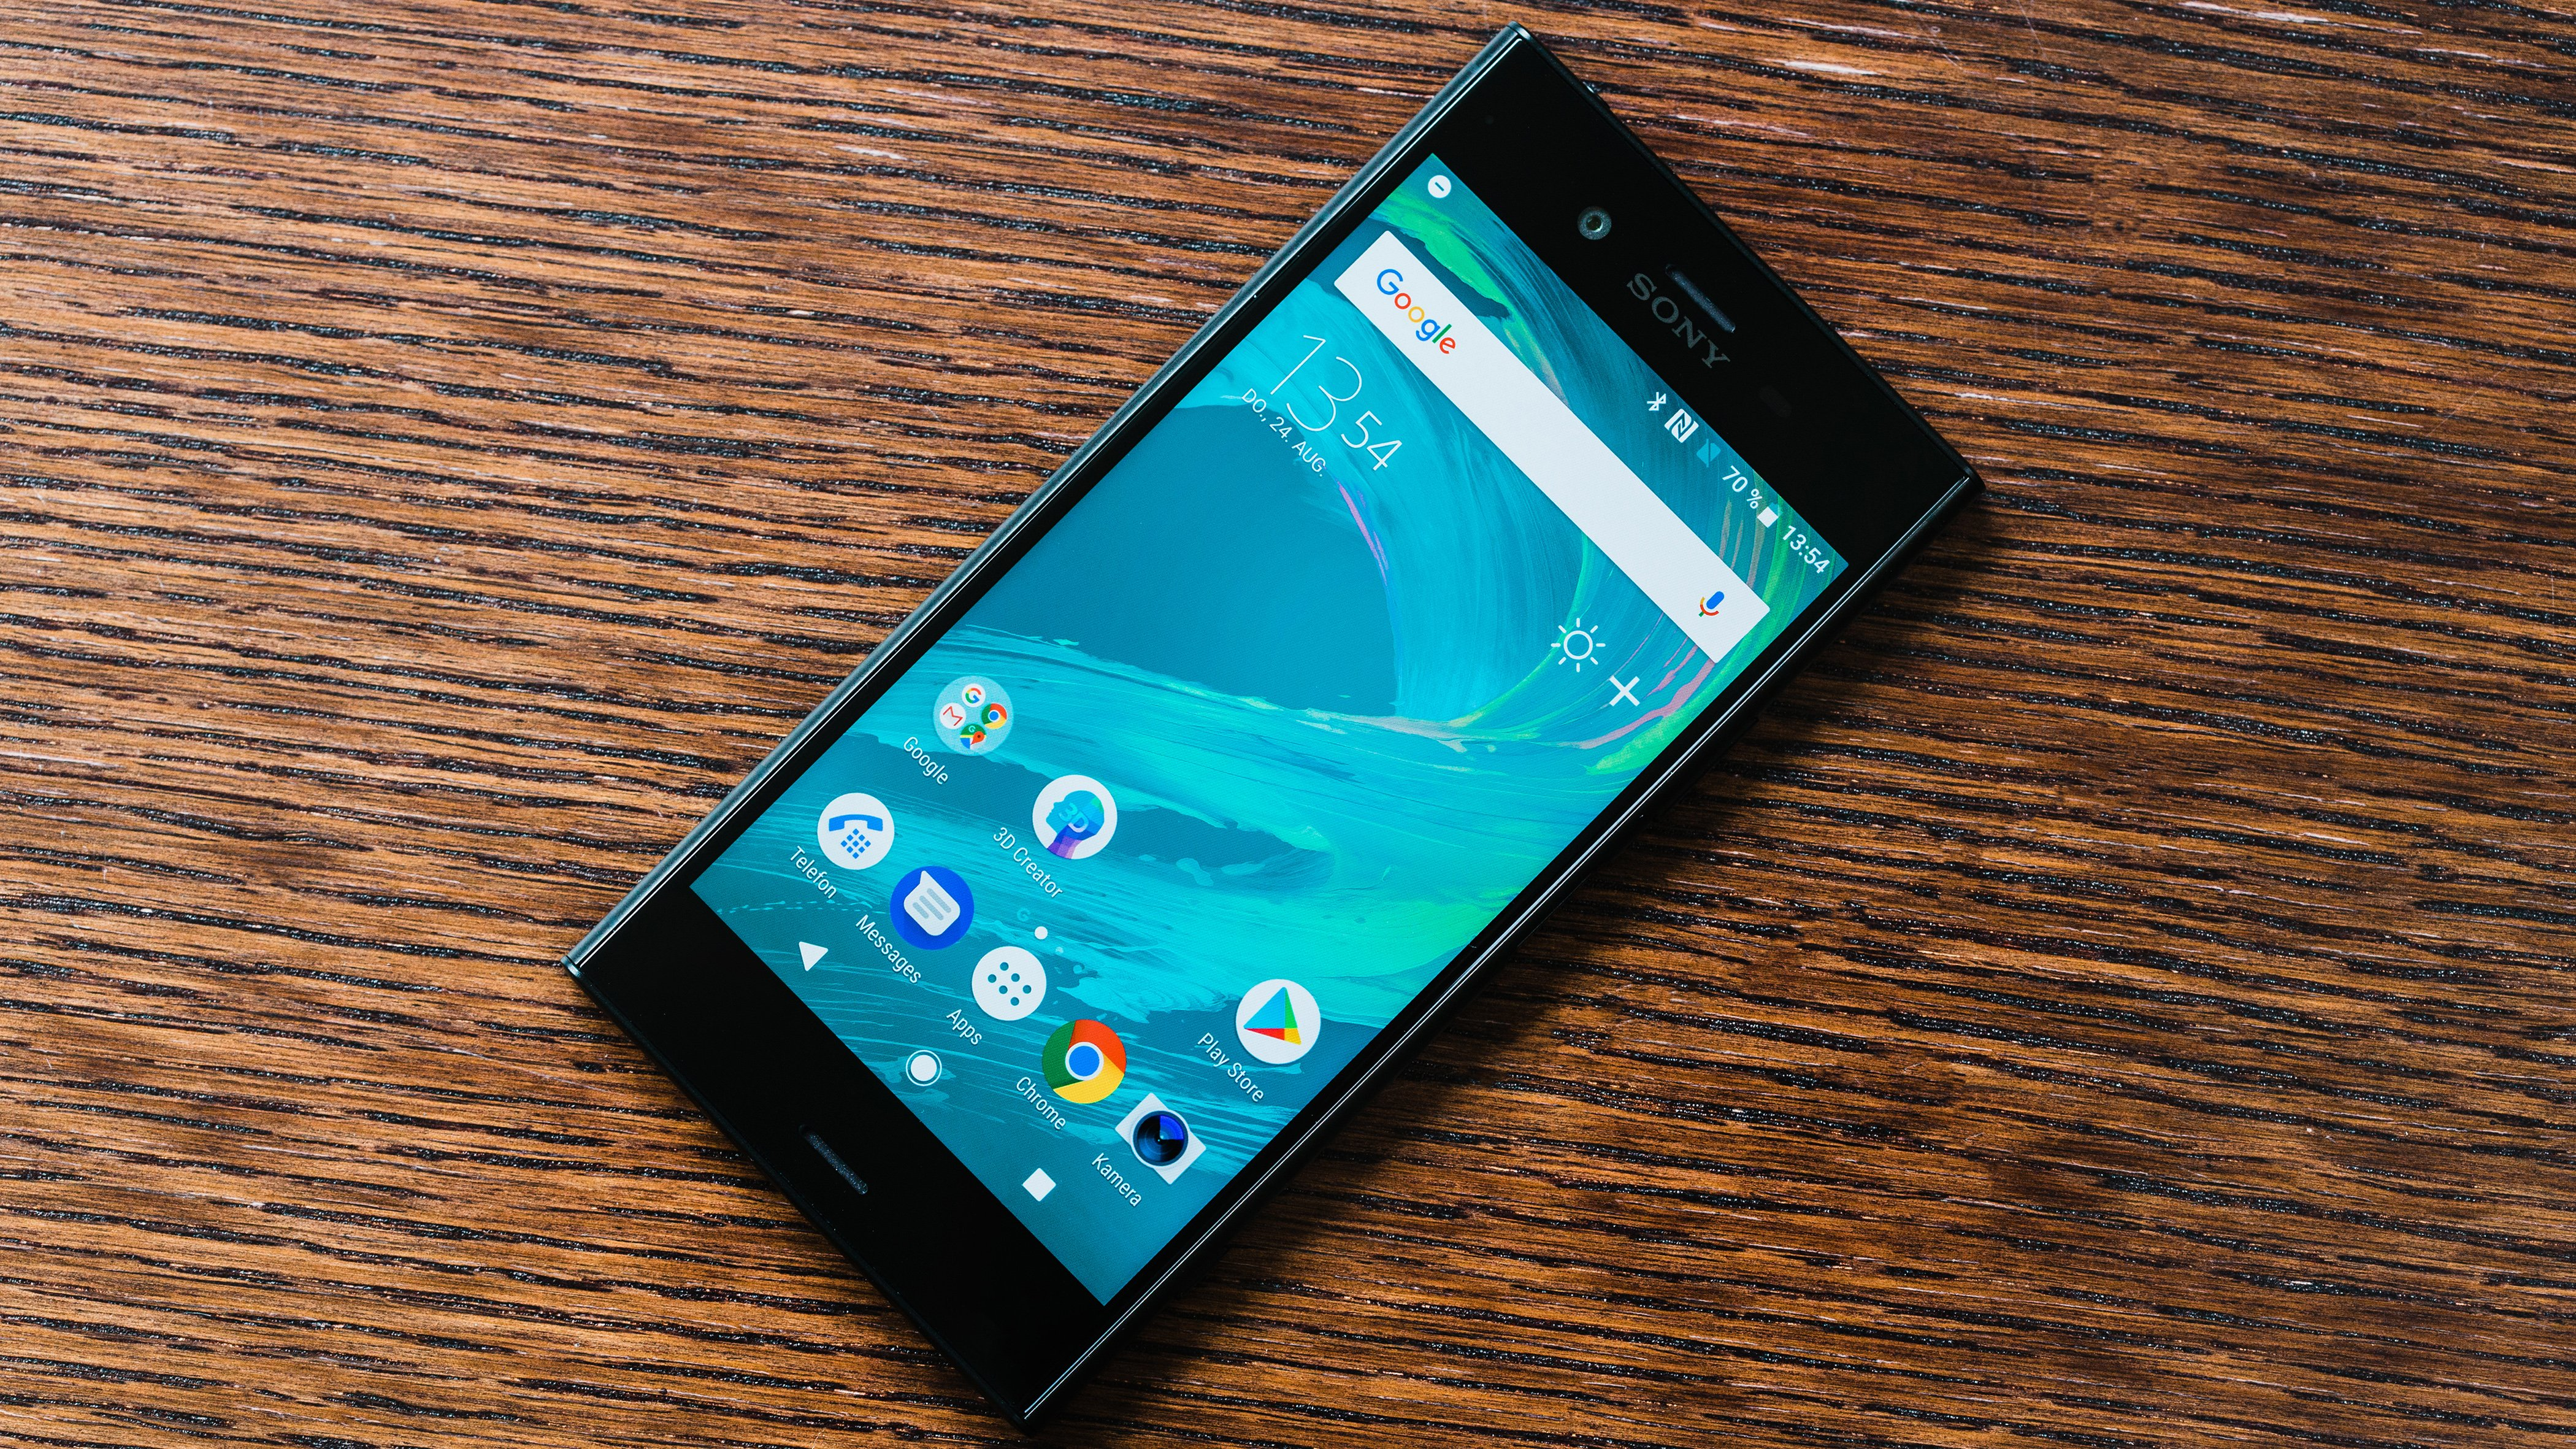 Sony Xperia XZ1 review: a brilliant flash that soon fades | AndroidPIT